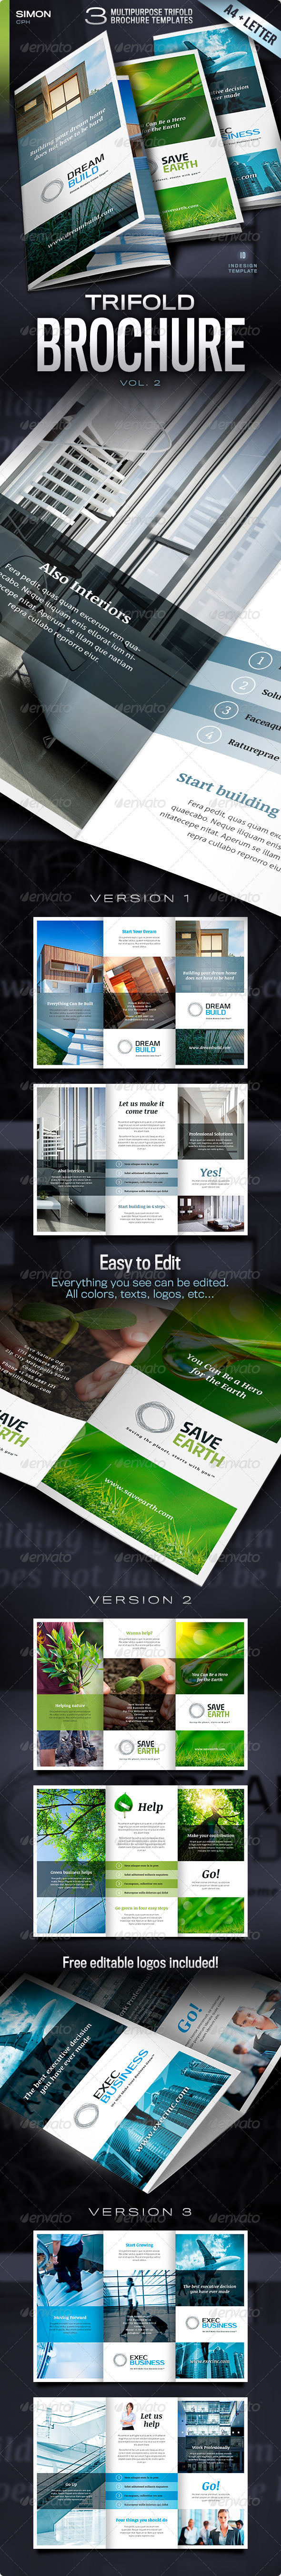 GraphicRiver Trifold Brochure Vol 2 4584228